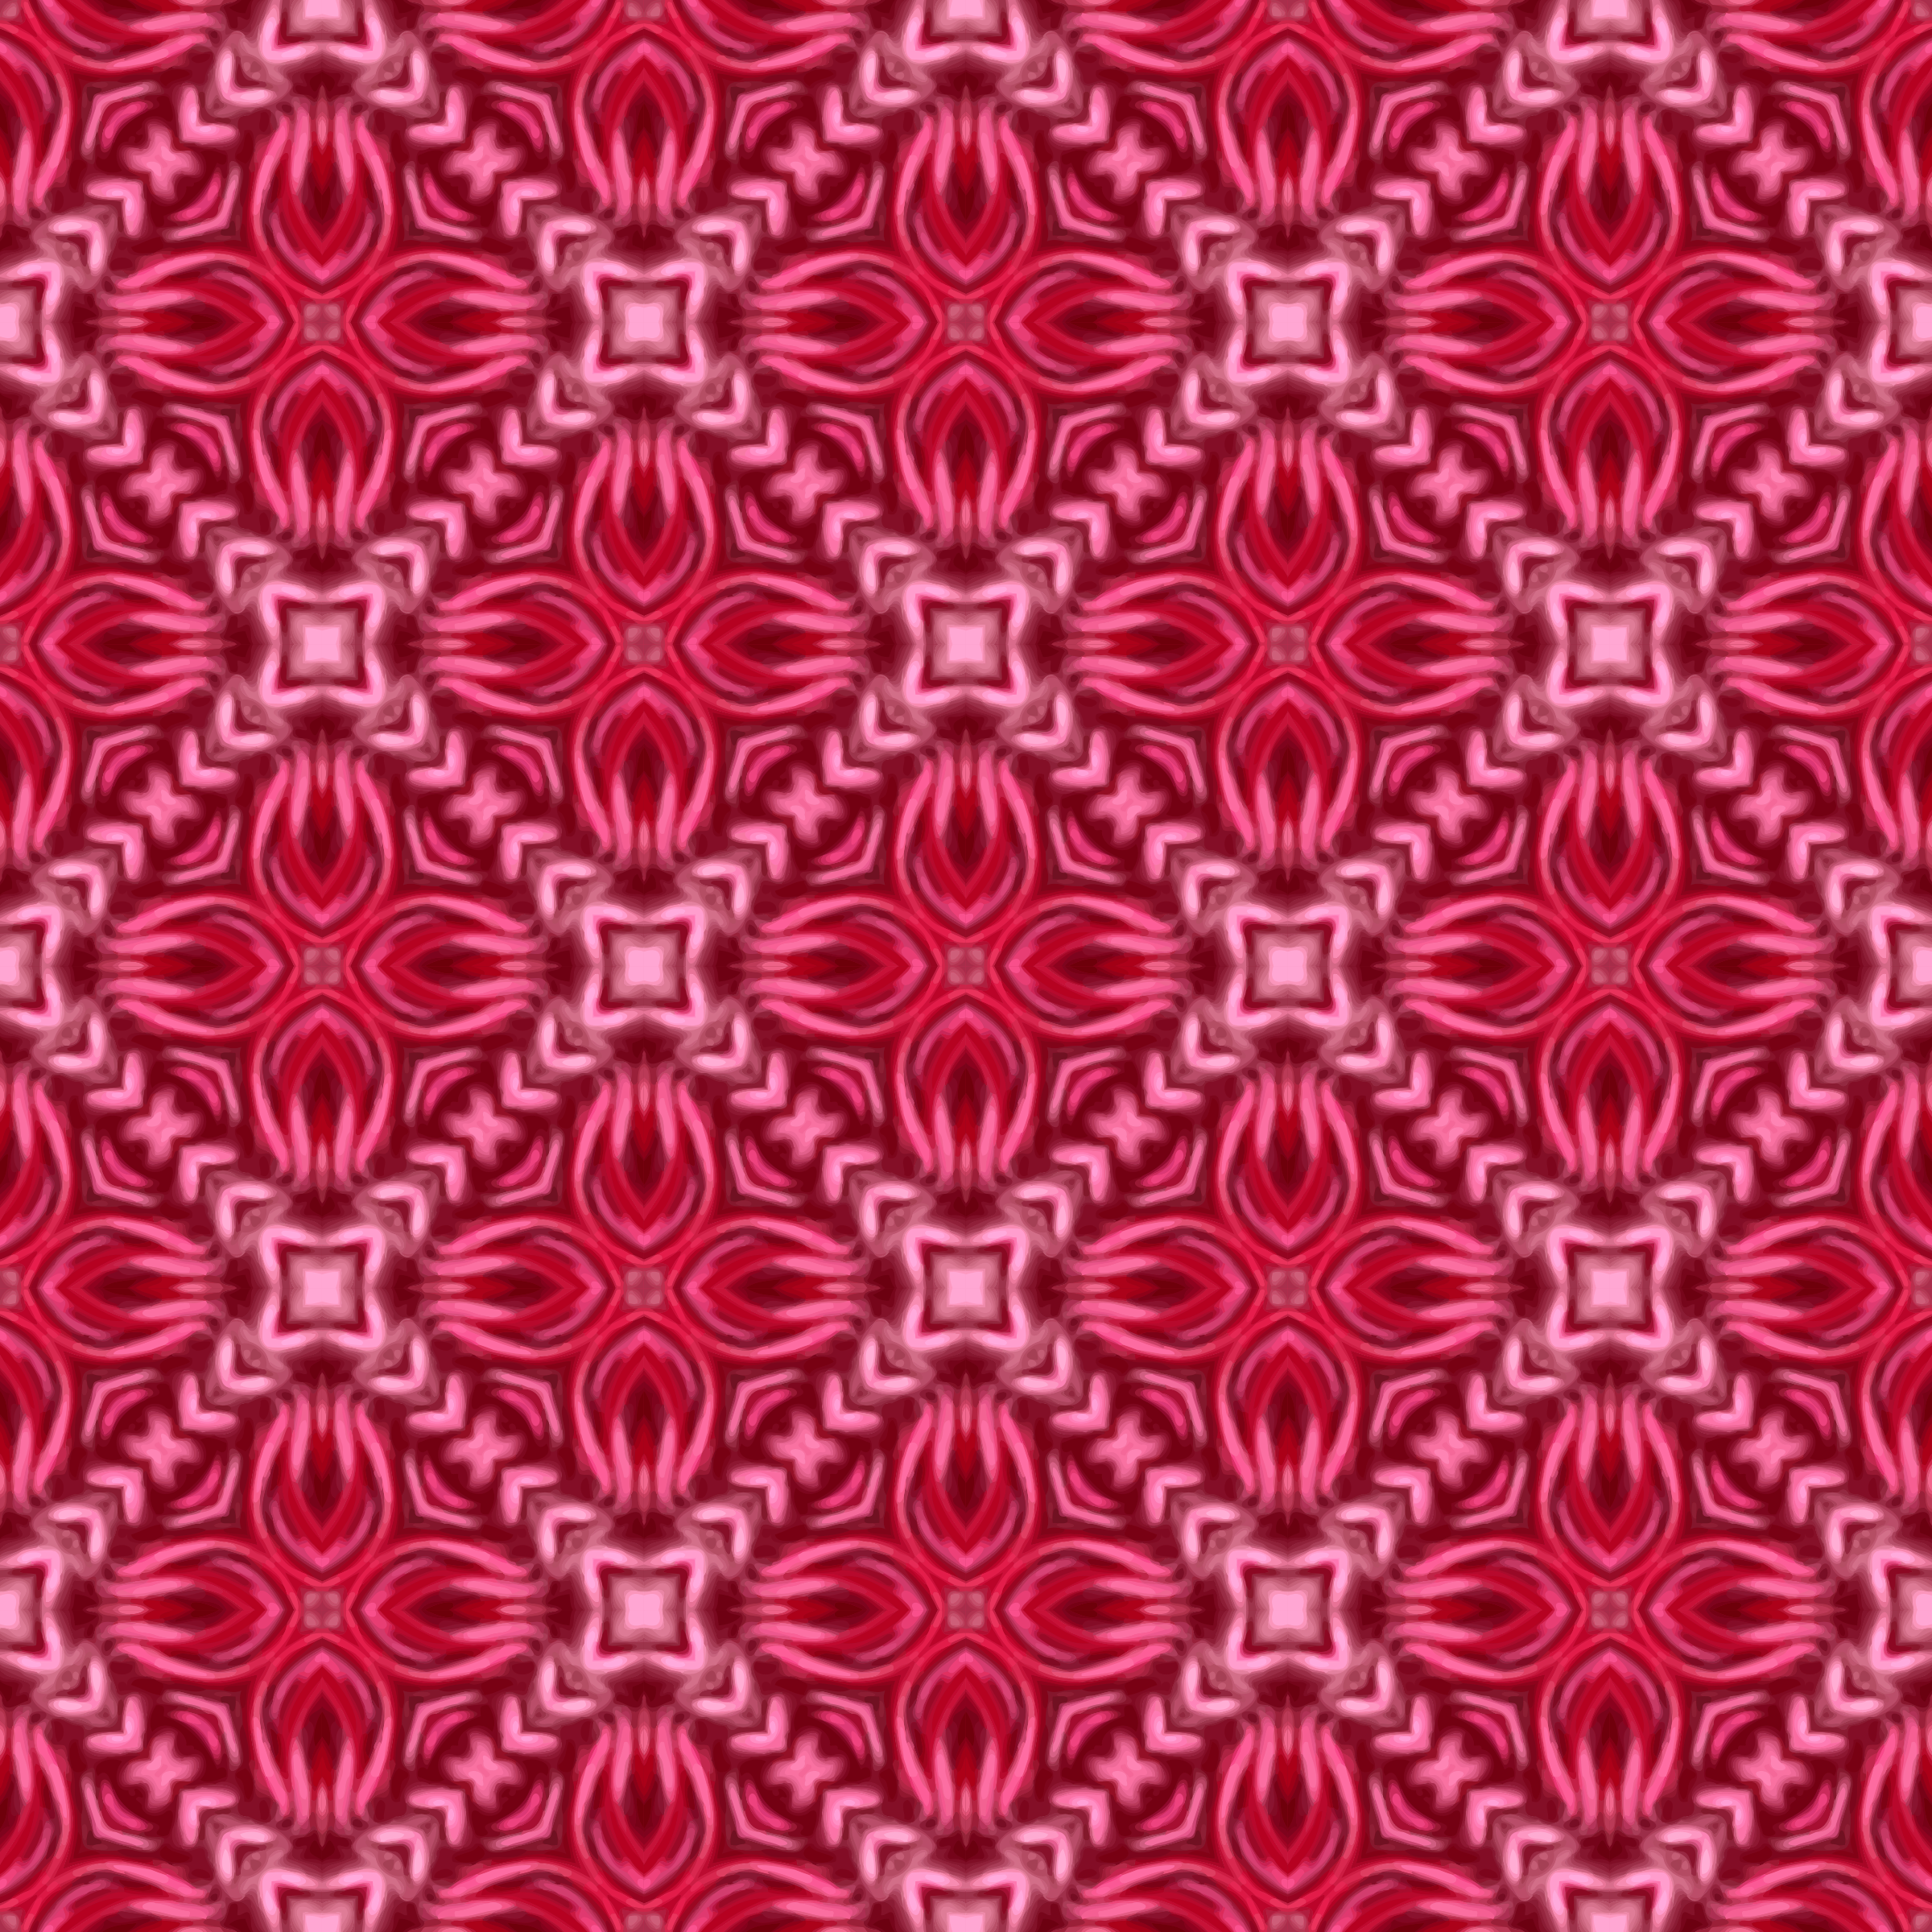 Background pattern 162 (colour 6) by Firkin